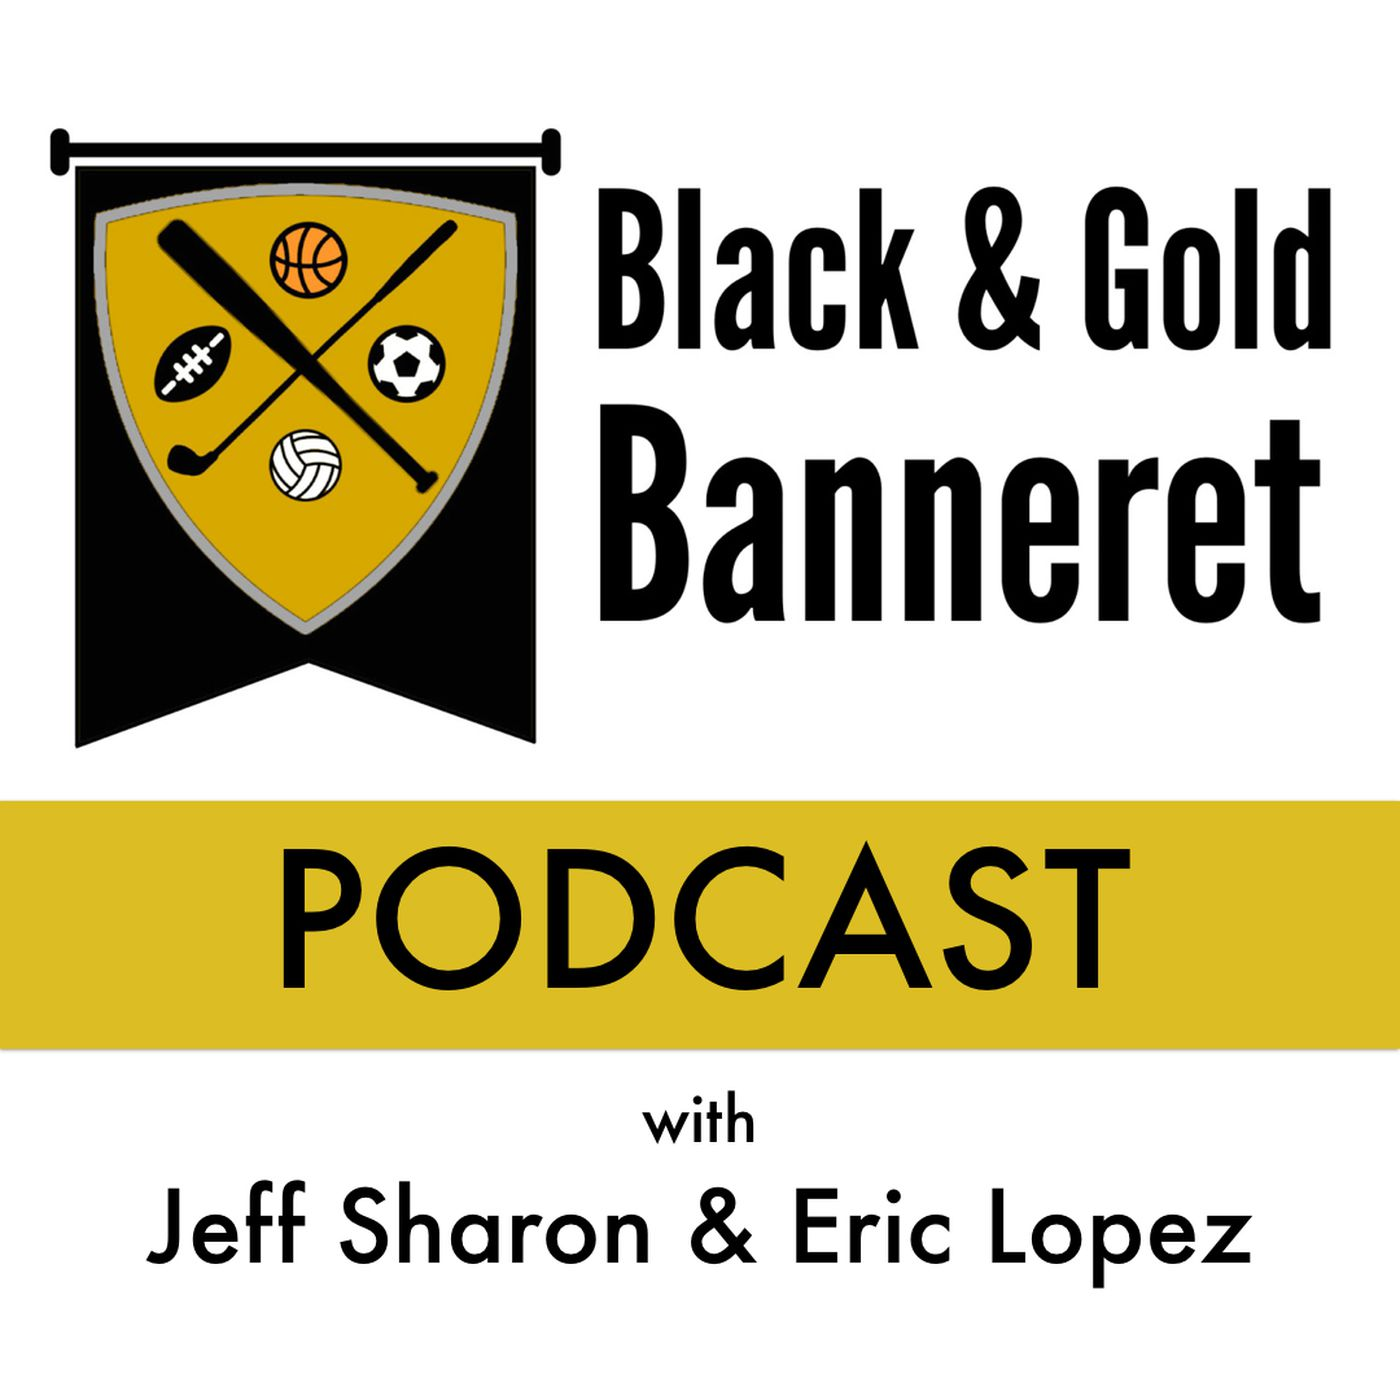 Podcast Previewing The War On I 4 With Dave Ryan Of Cbs Sports Network Black Gold Banneret